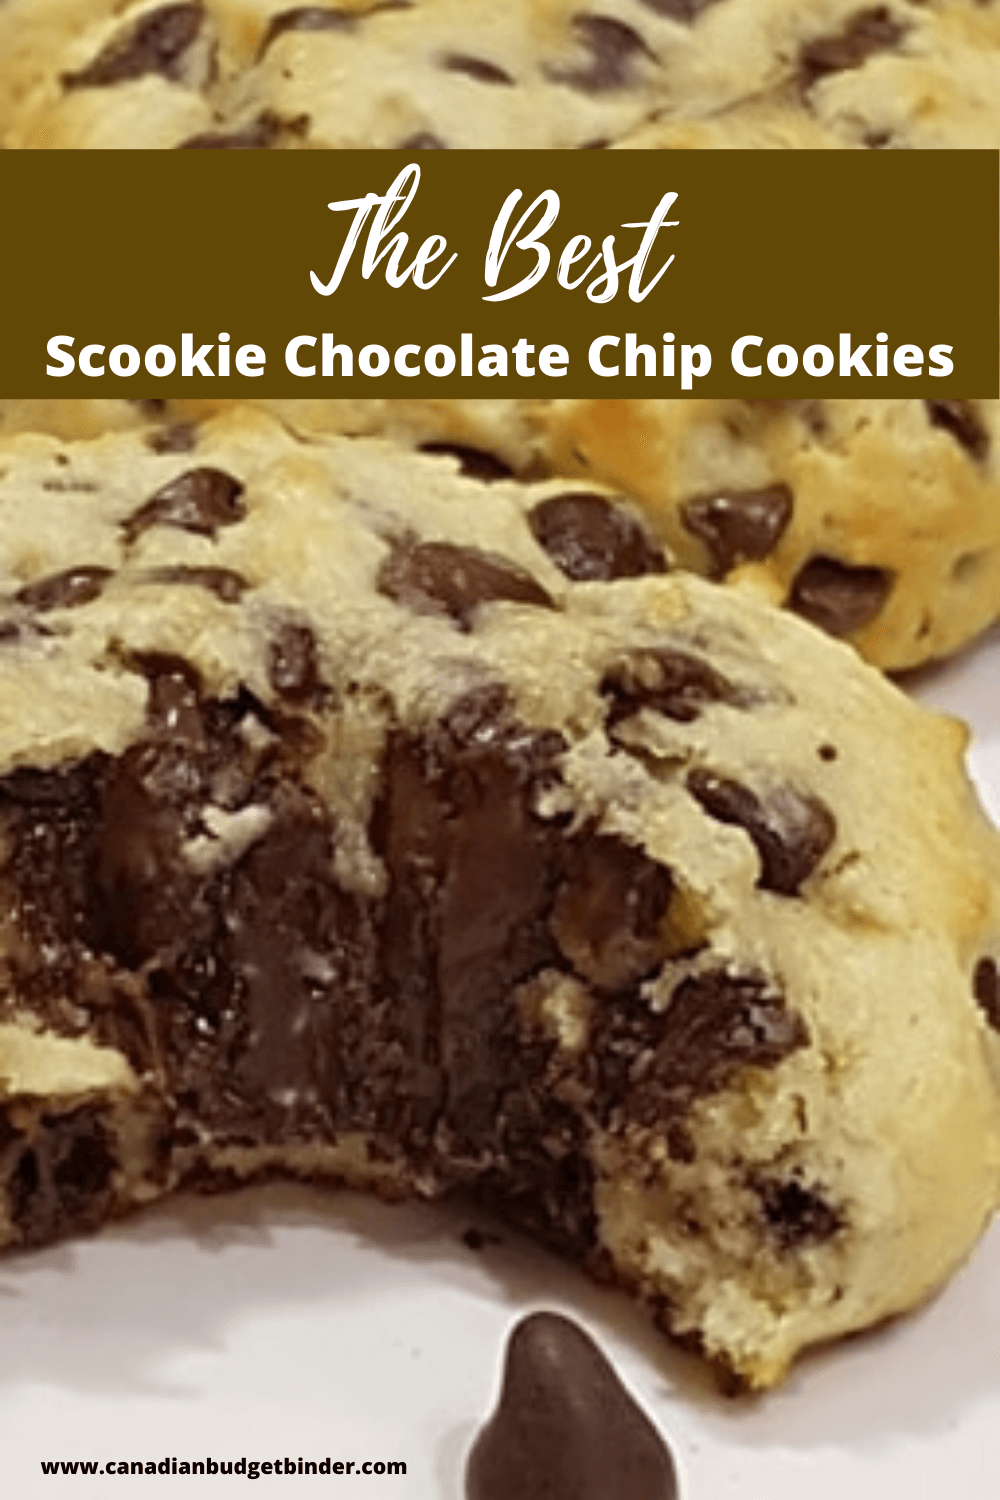 Scookies Ultimate Chocolate Chip Cookies